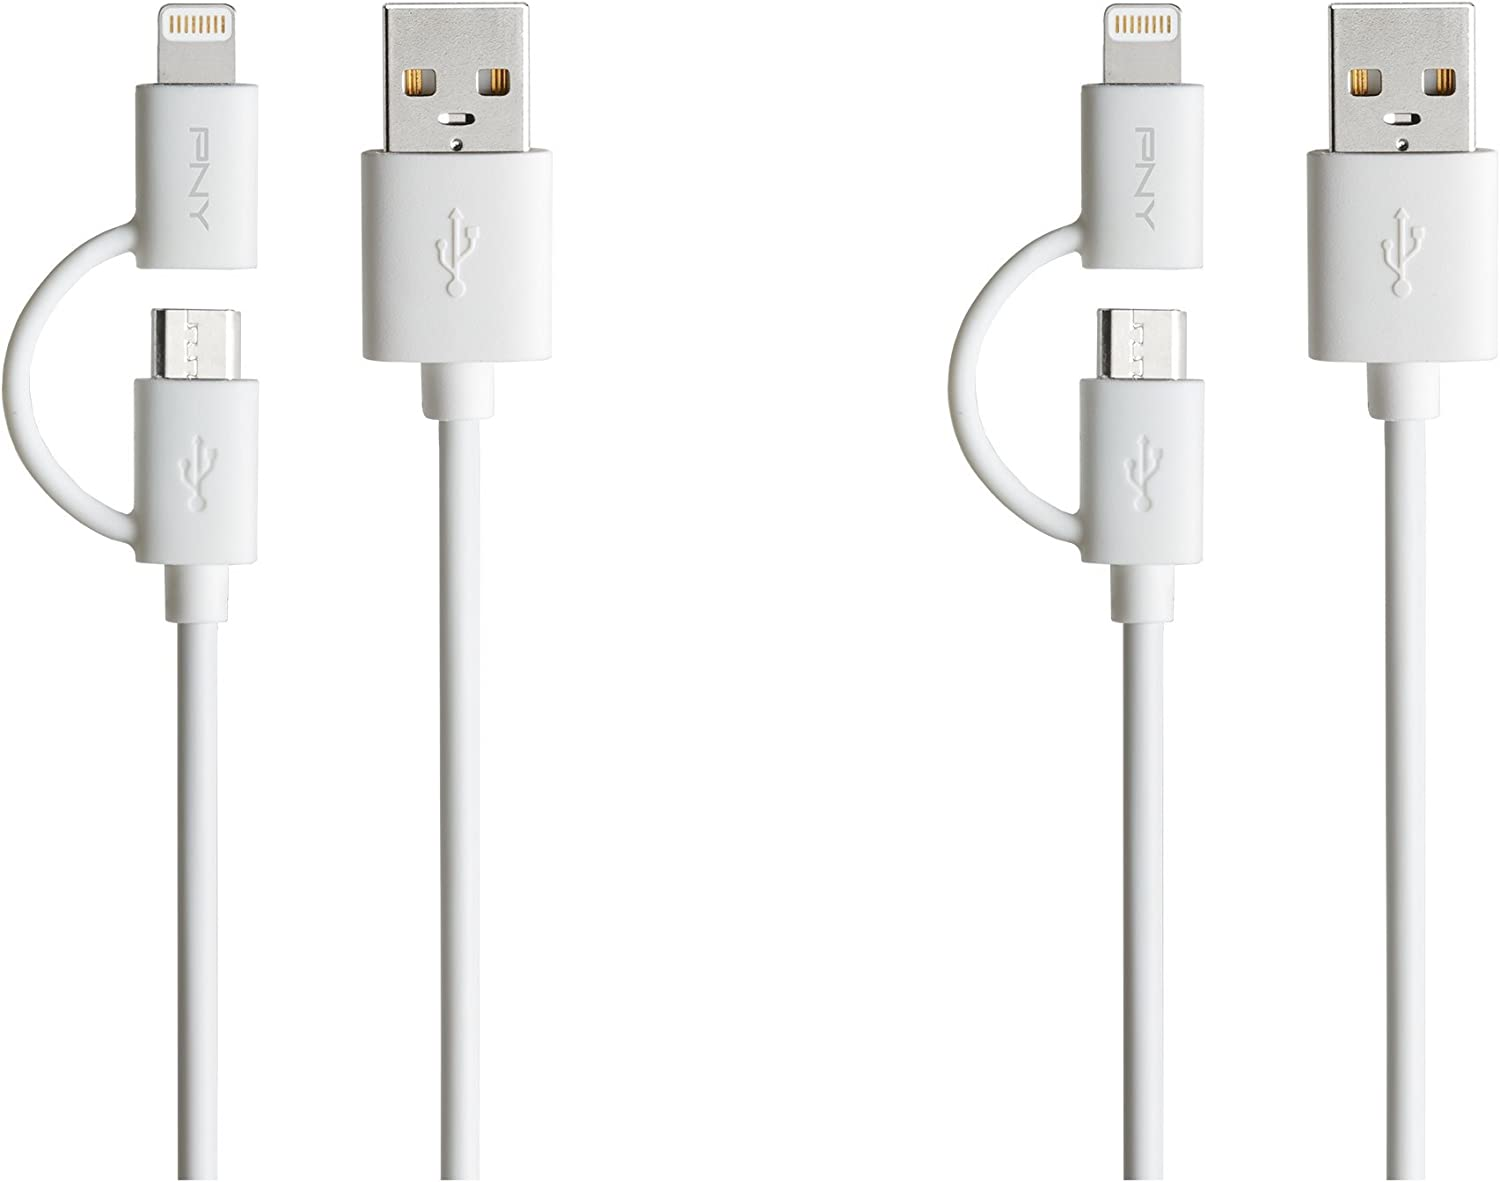 PNY C-UA-UULN-W01X4-01 2-in-1 Micro-USB and Apple Lightning Charge /& Sync Cable 4-Pack